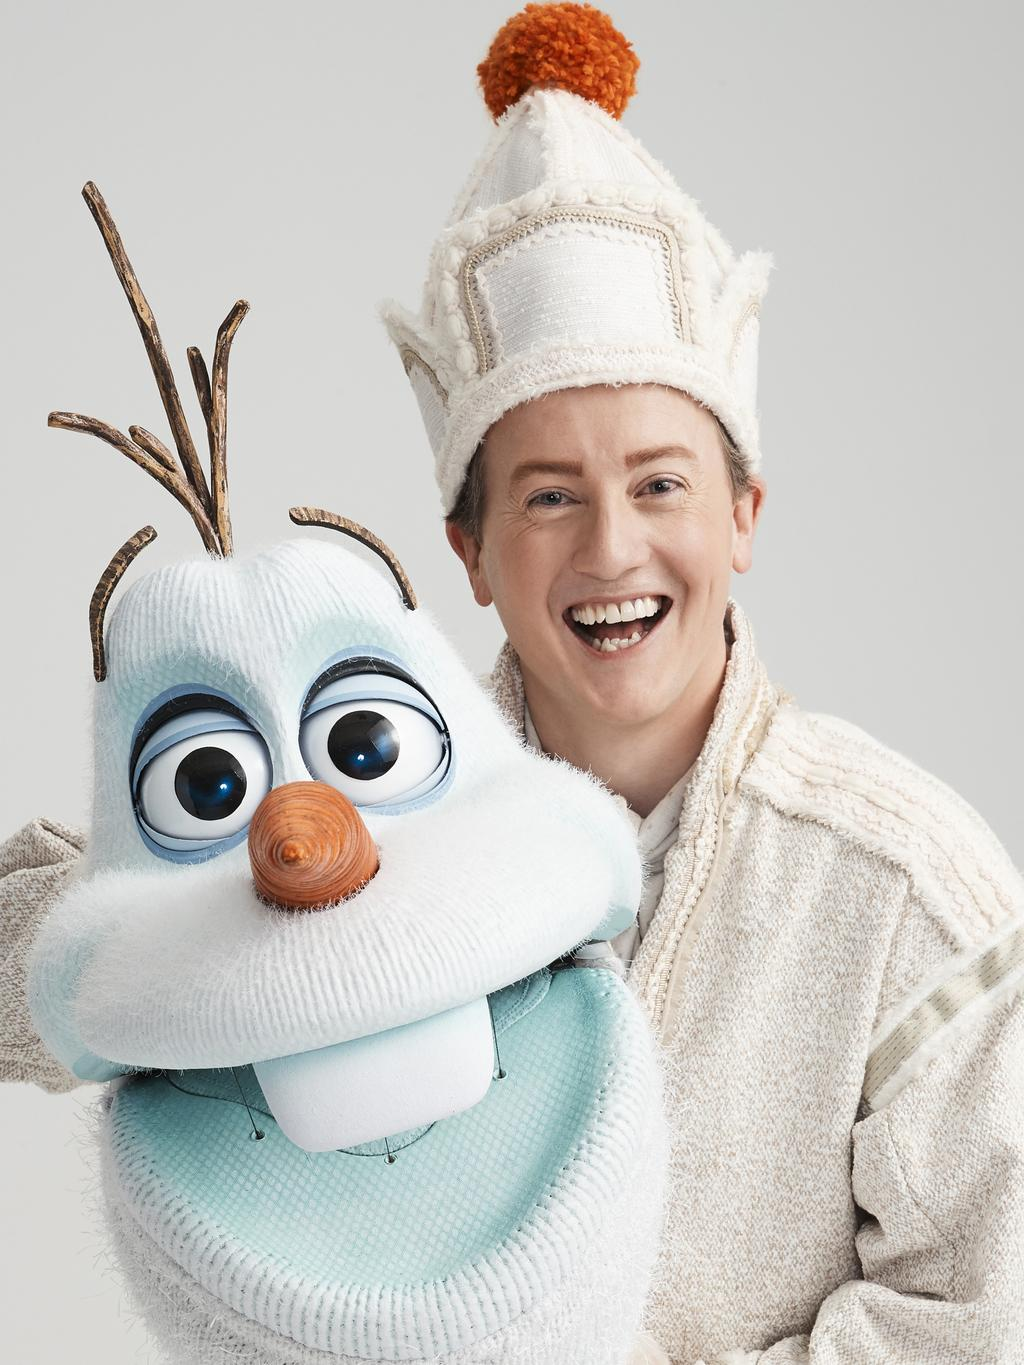 Matt Lee as Olaf in Frozen The Musical